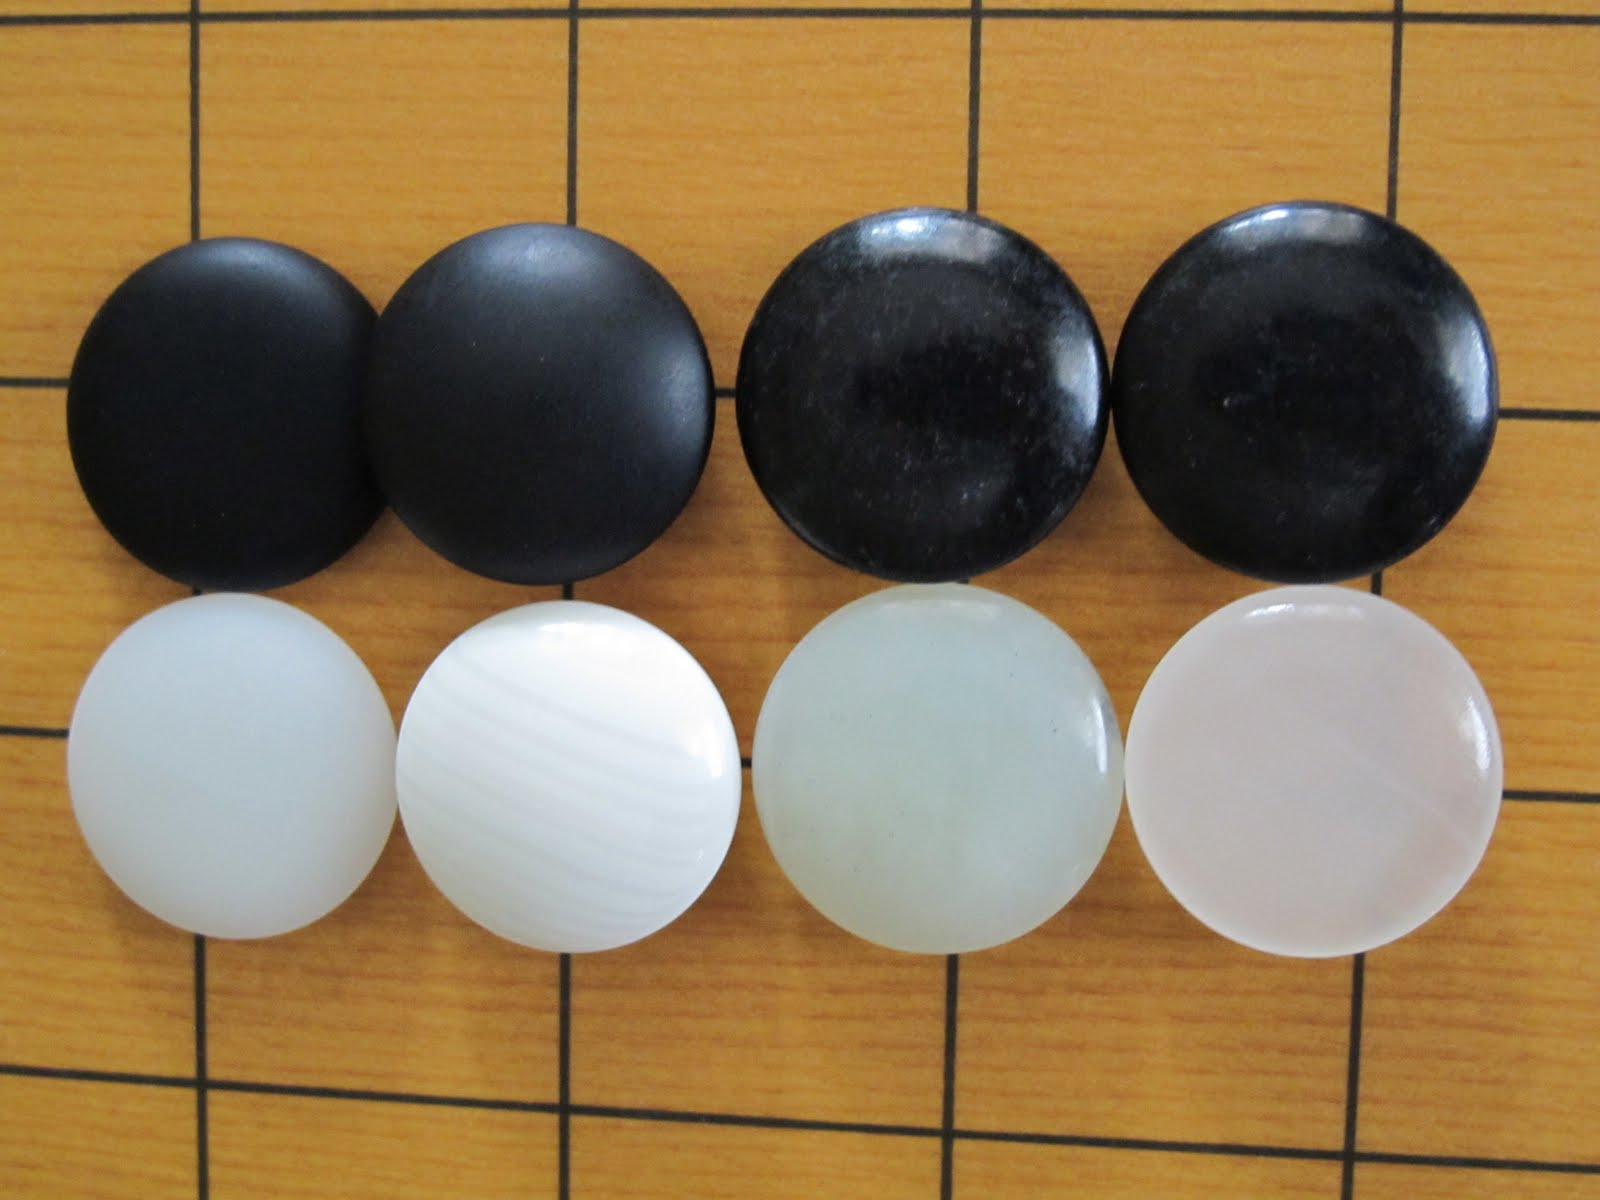 From left to right: Yunzi, Slate & Shell, Jade Set (Green), Jade Set (White)